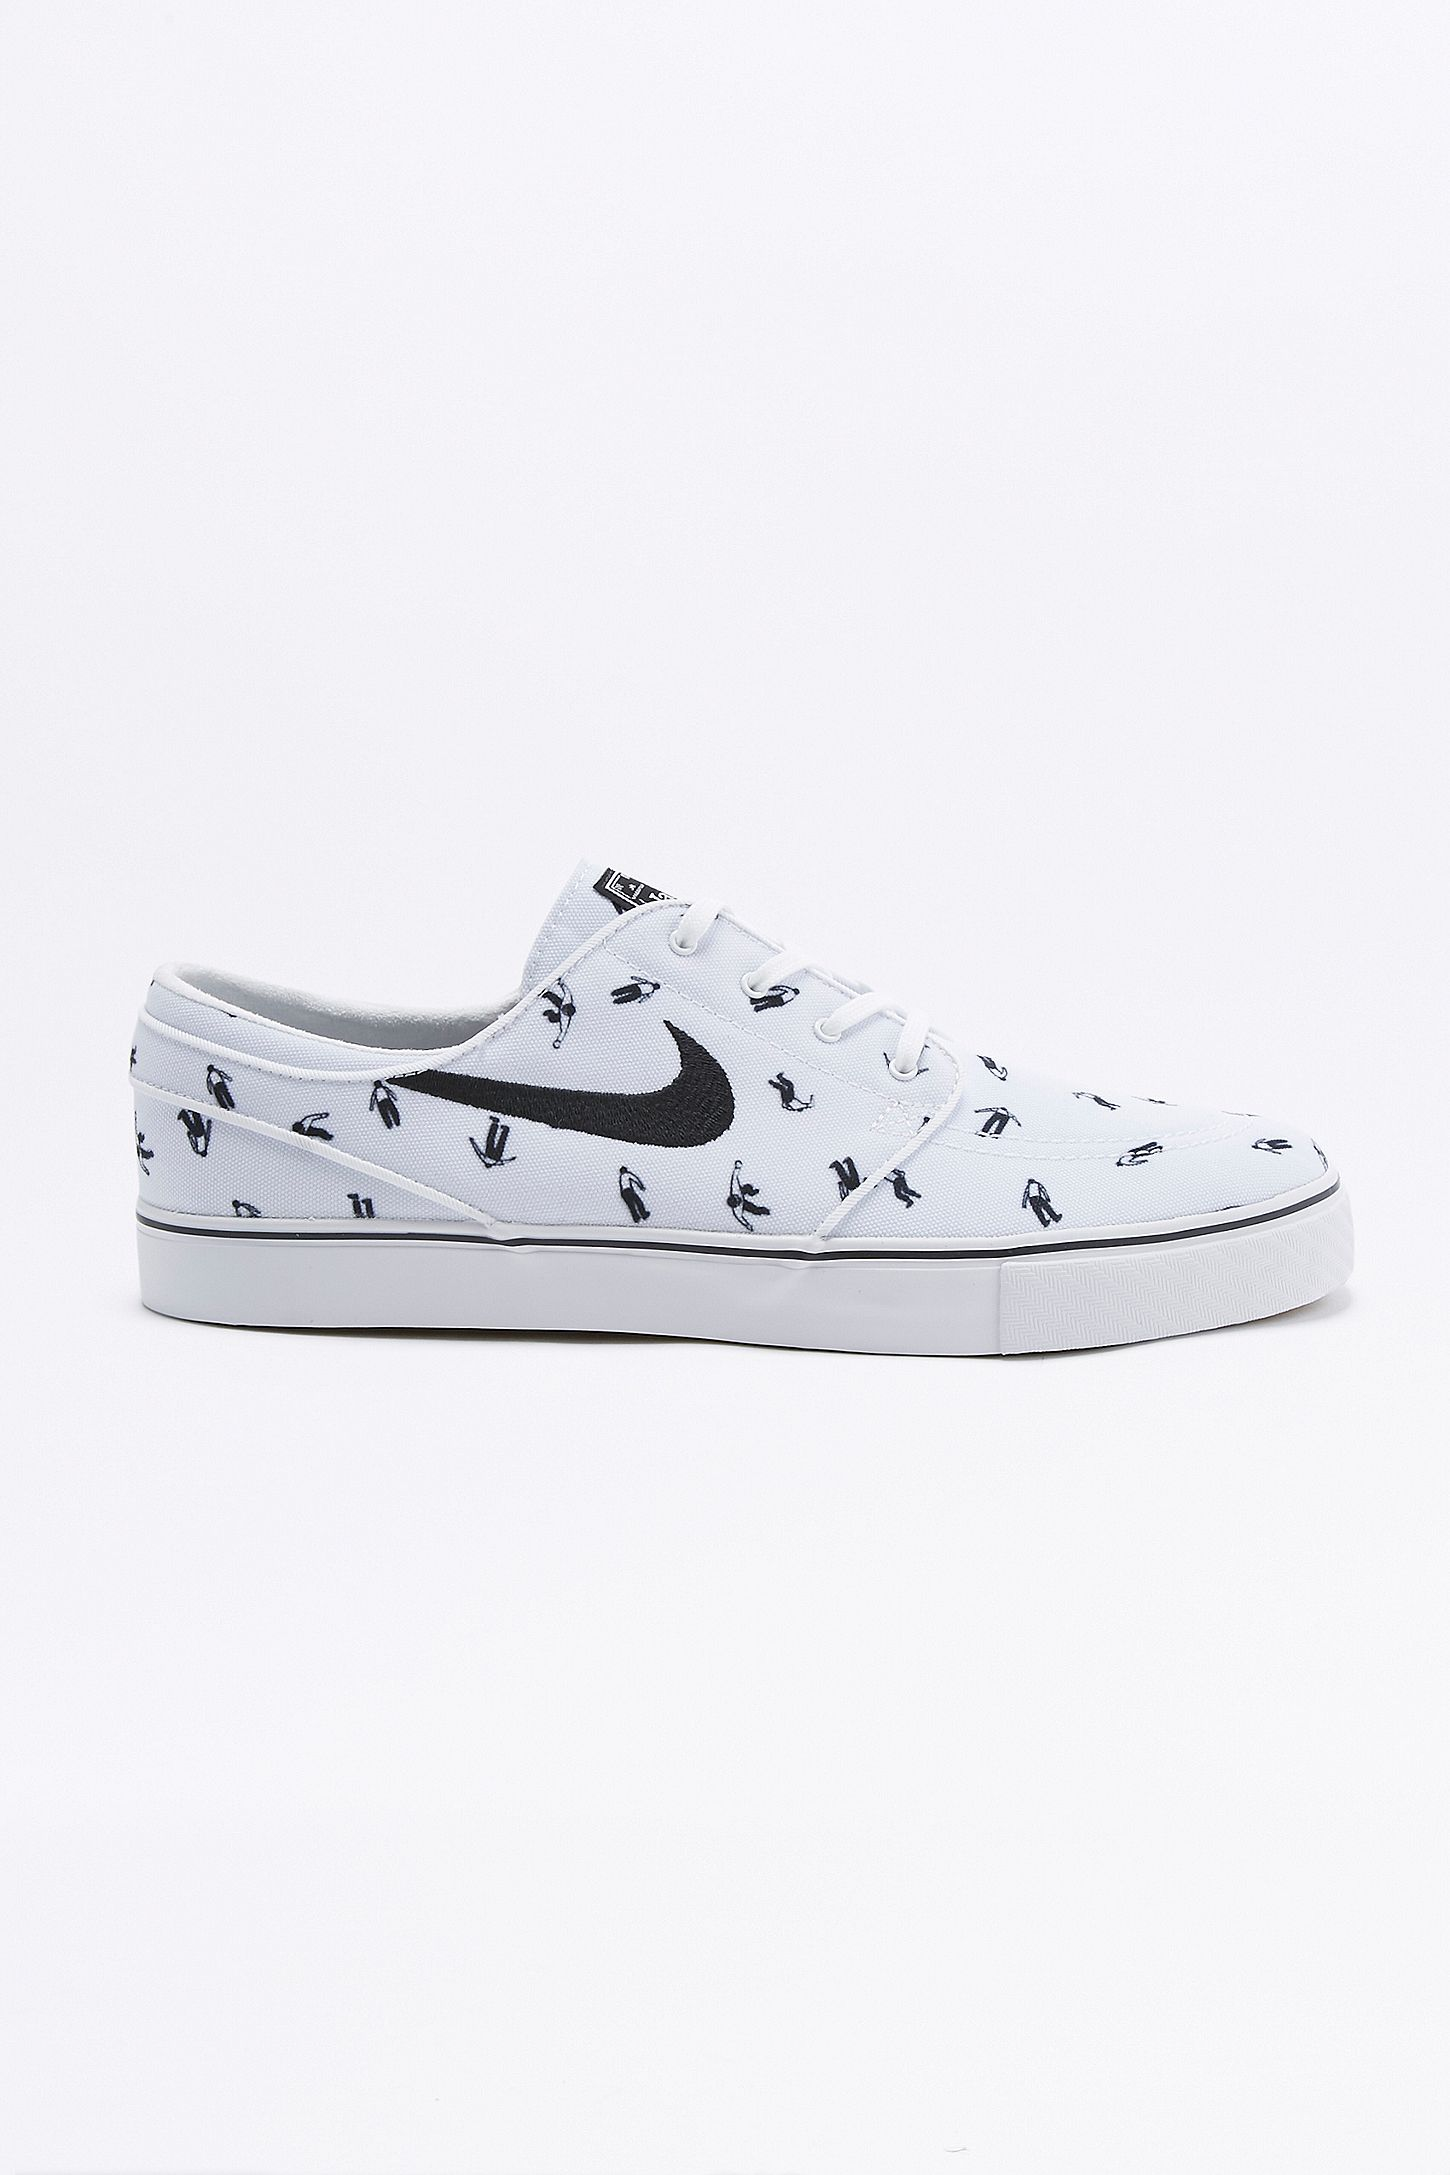 dd51f6dece7a Nike SB Zoom Stefan Janoski Canvas Premium Trainers. Click on image to zoom.  Hover to zoom. Double Tap to Zoom